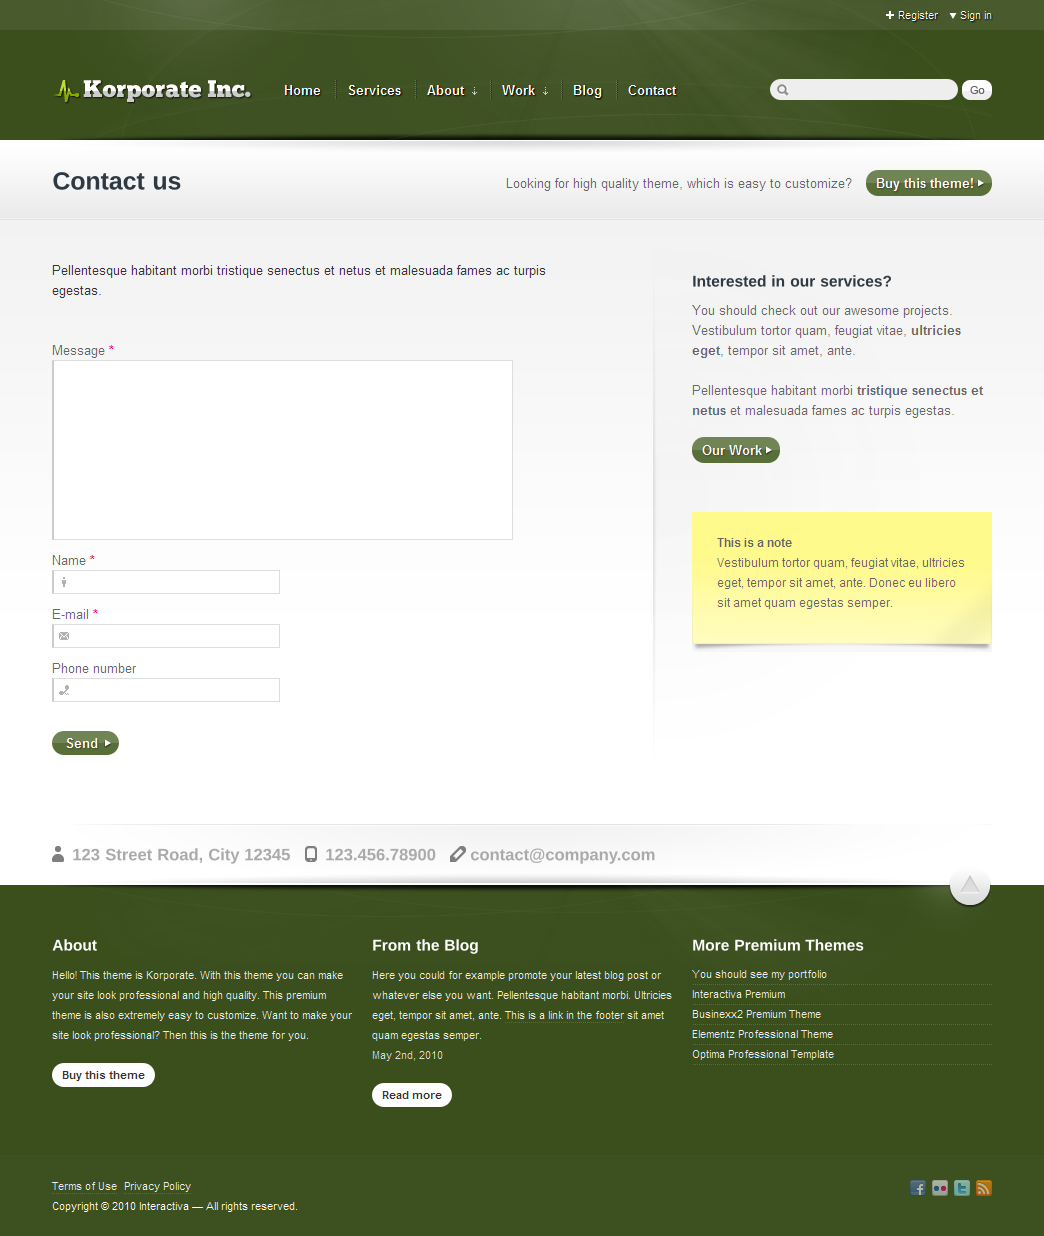 Korporate - Business and Corporate - Contact page in green color theme